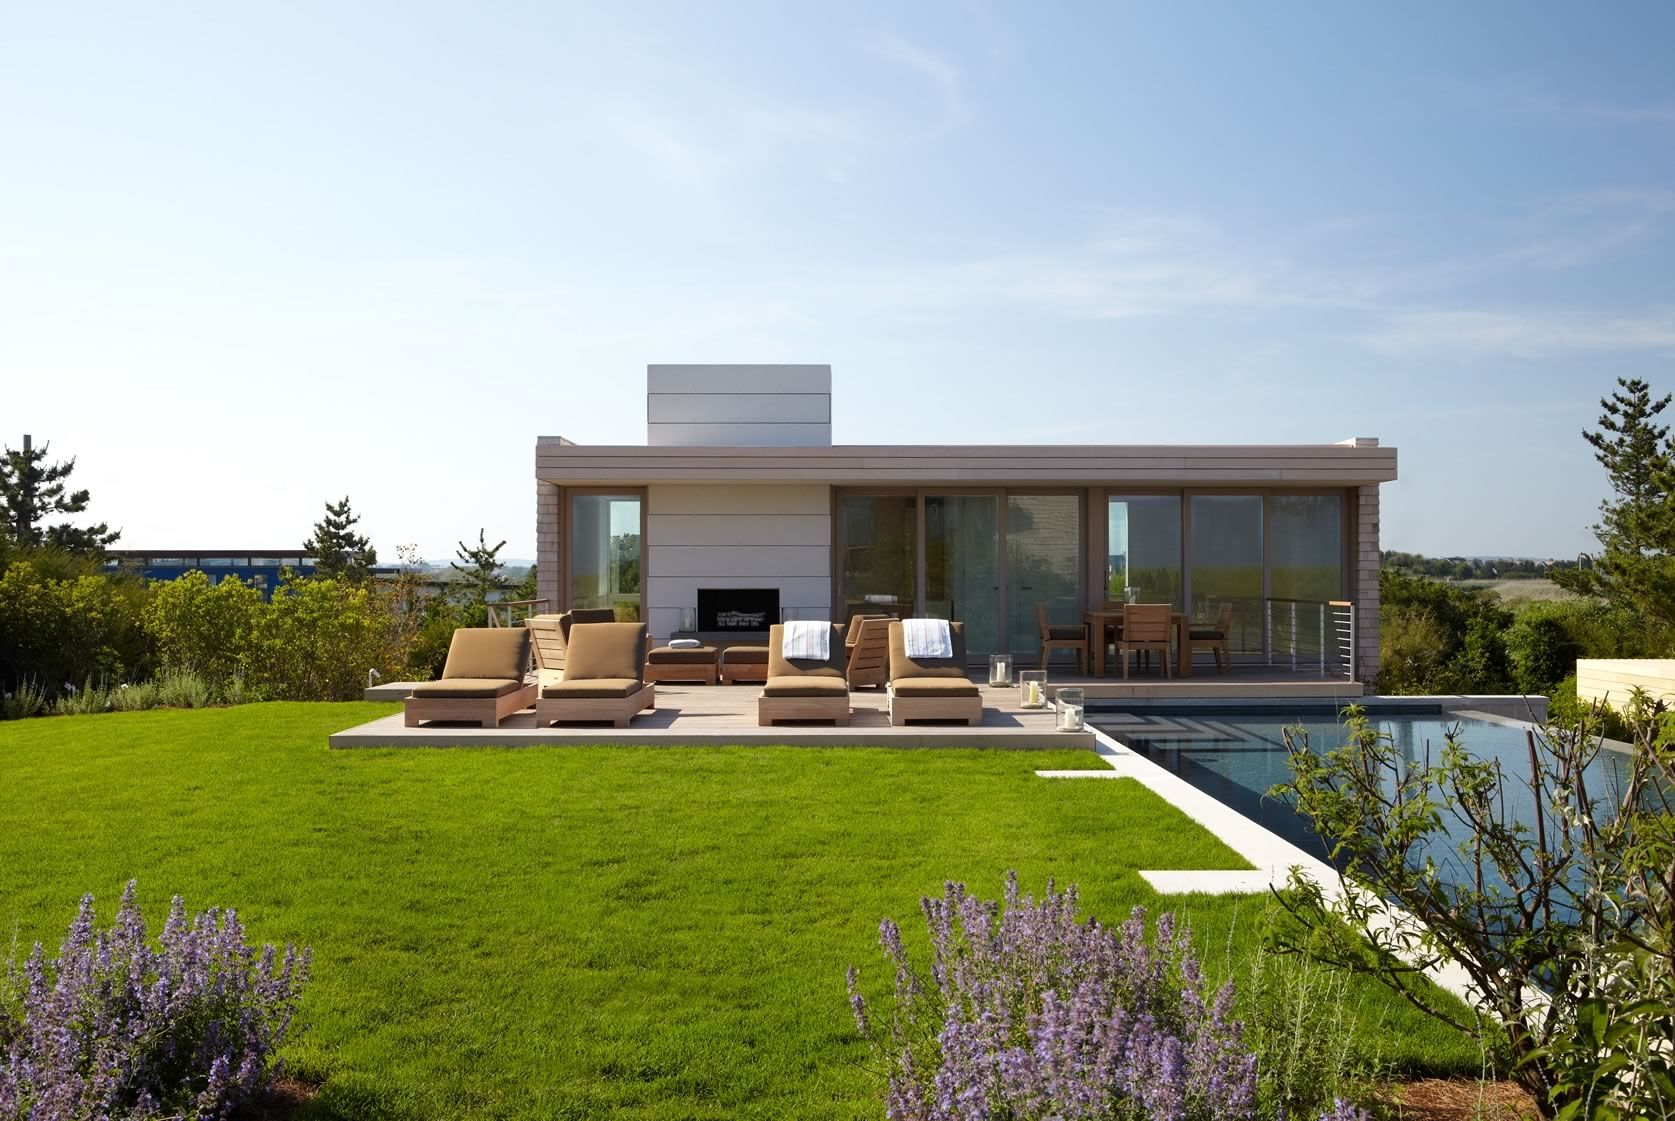 Pool House Spaces Stelle Lomont Rouhani Architects